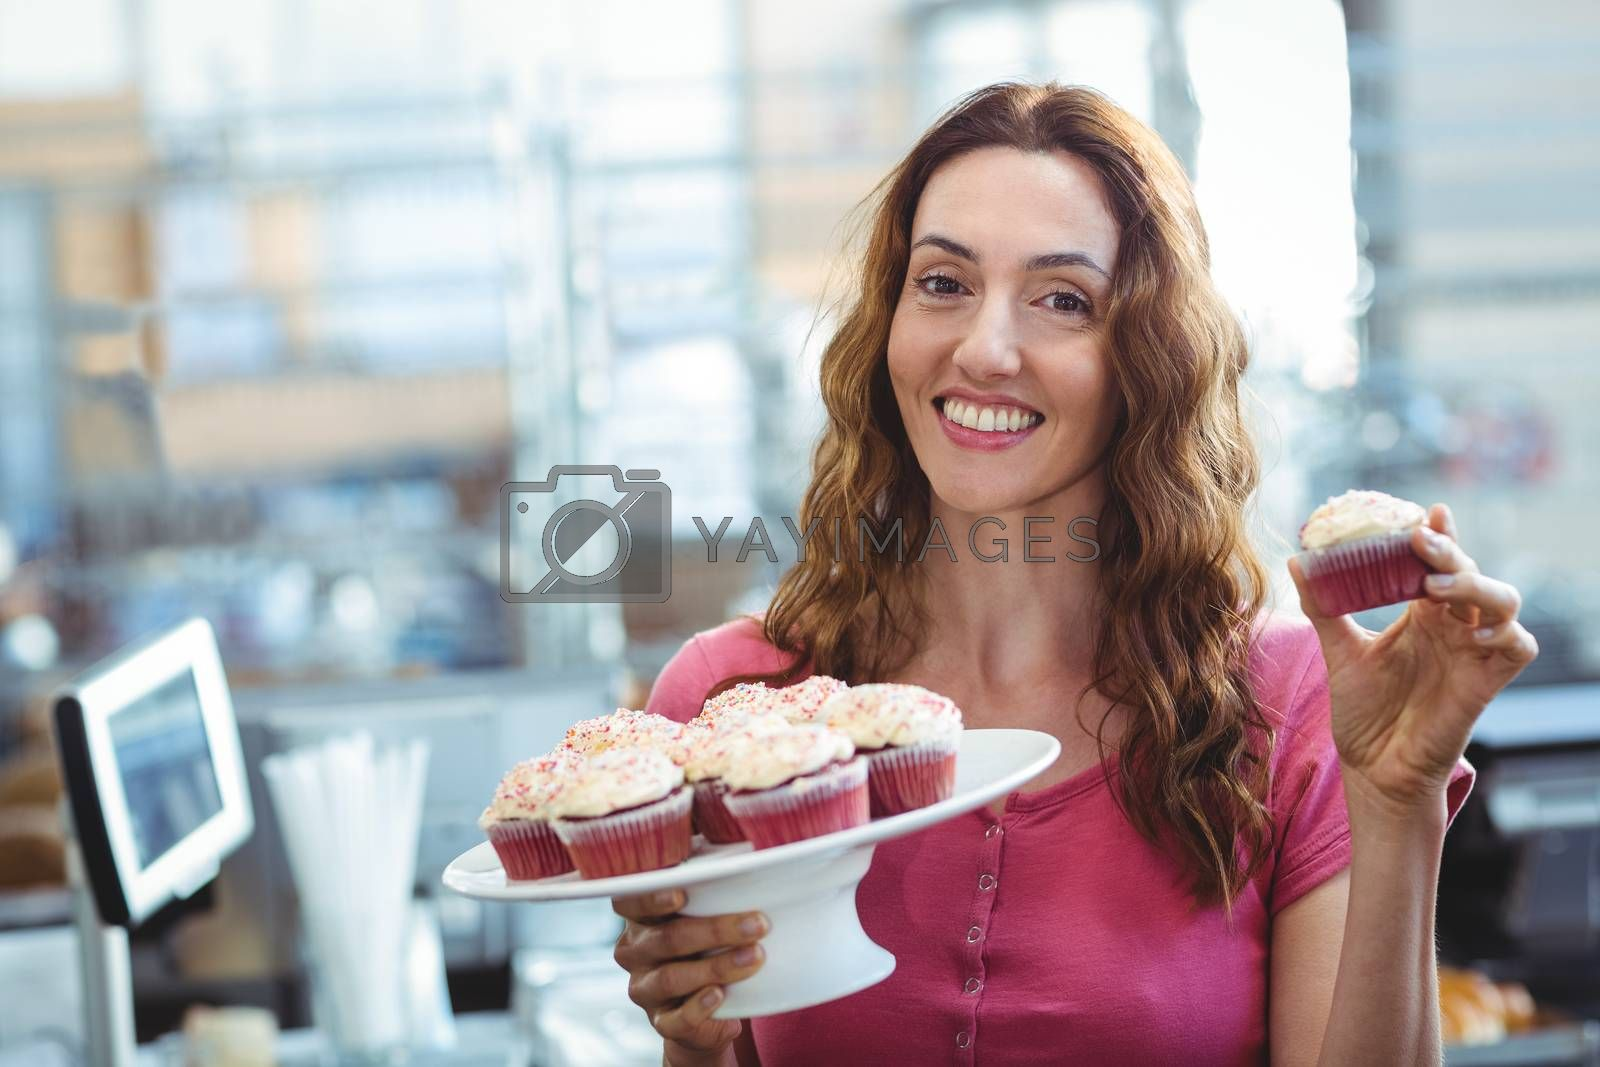 Royalty free image of Pretty brunette showing cupcake  by Wavebreakmedia